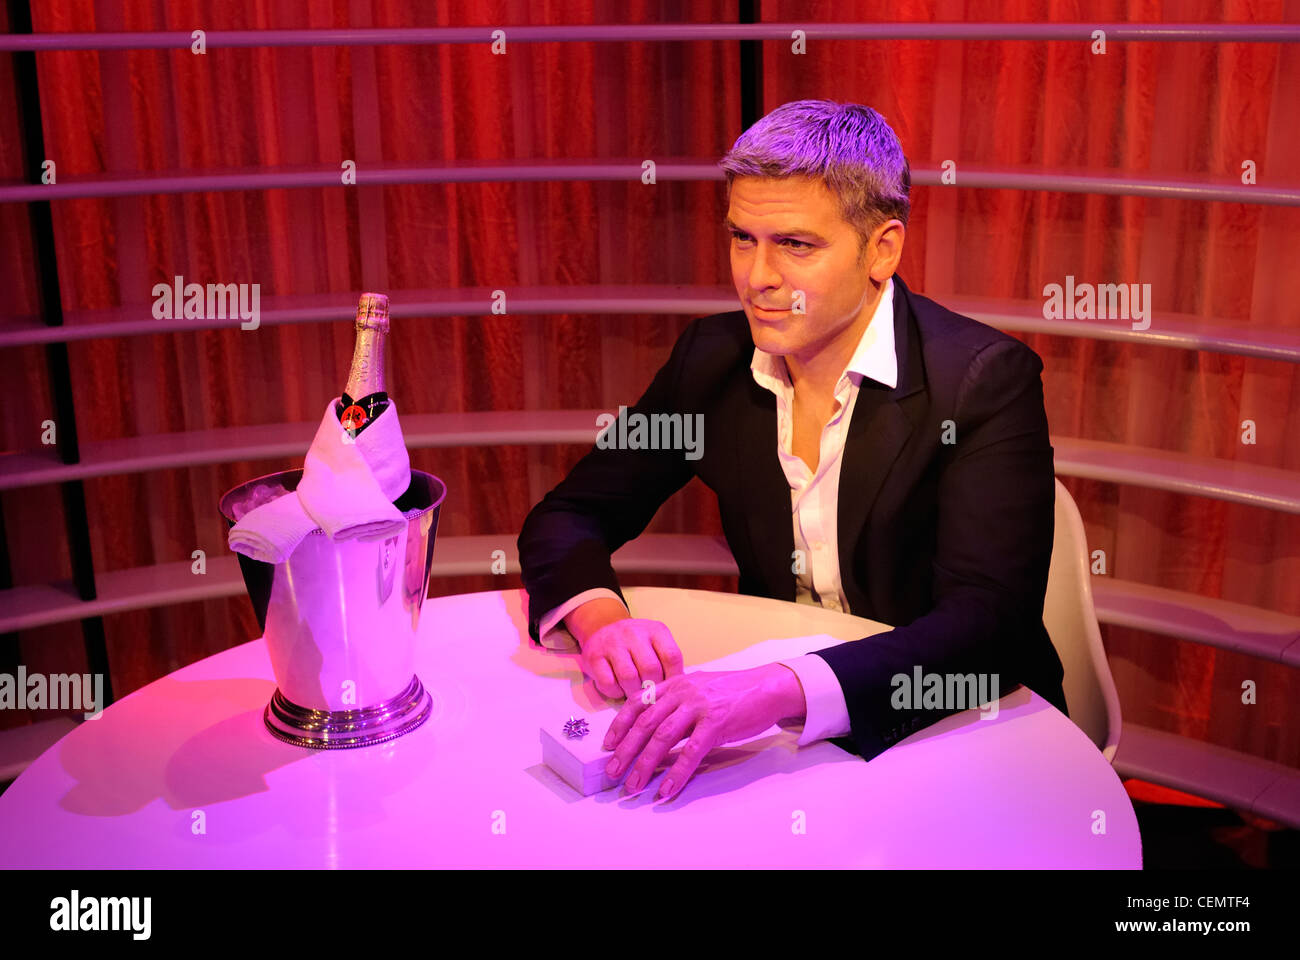 george clooney as a wax figure in madame tussauds wax museum unter stock photo royalty free. Black Bedroom Furniture Sets. Home Design Ideas